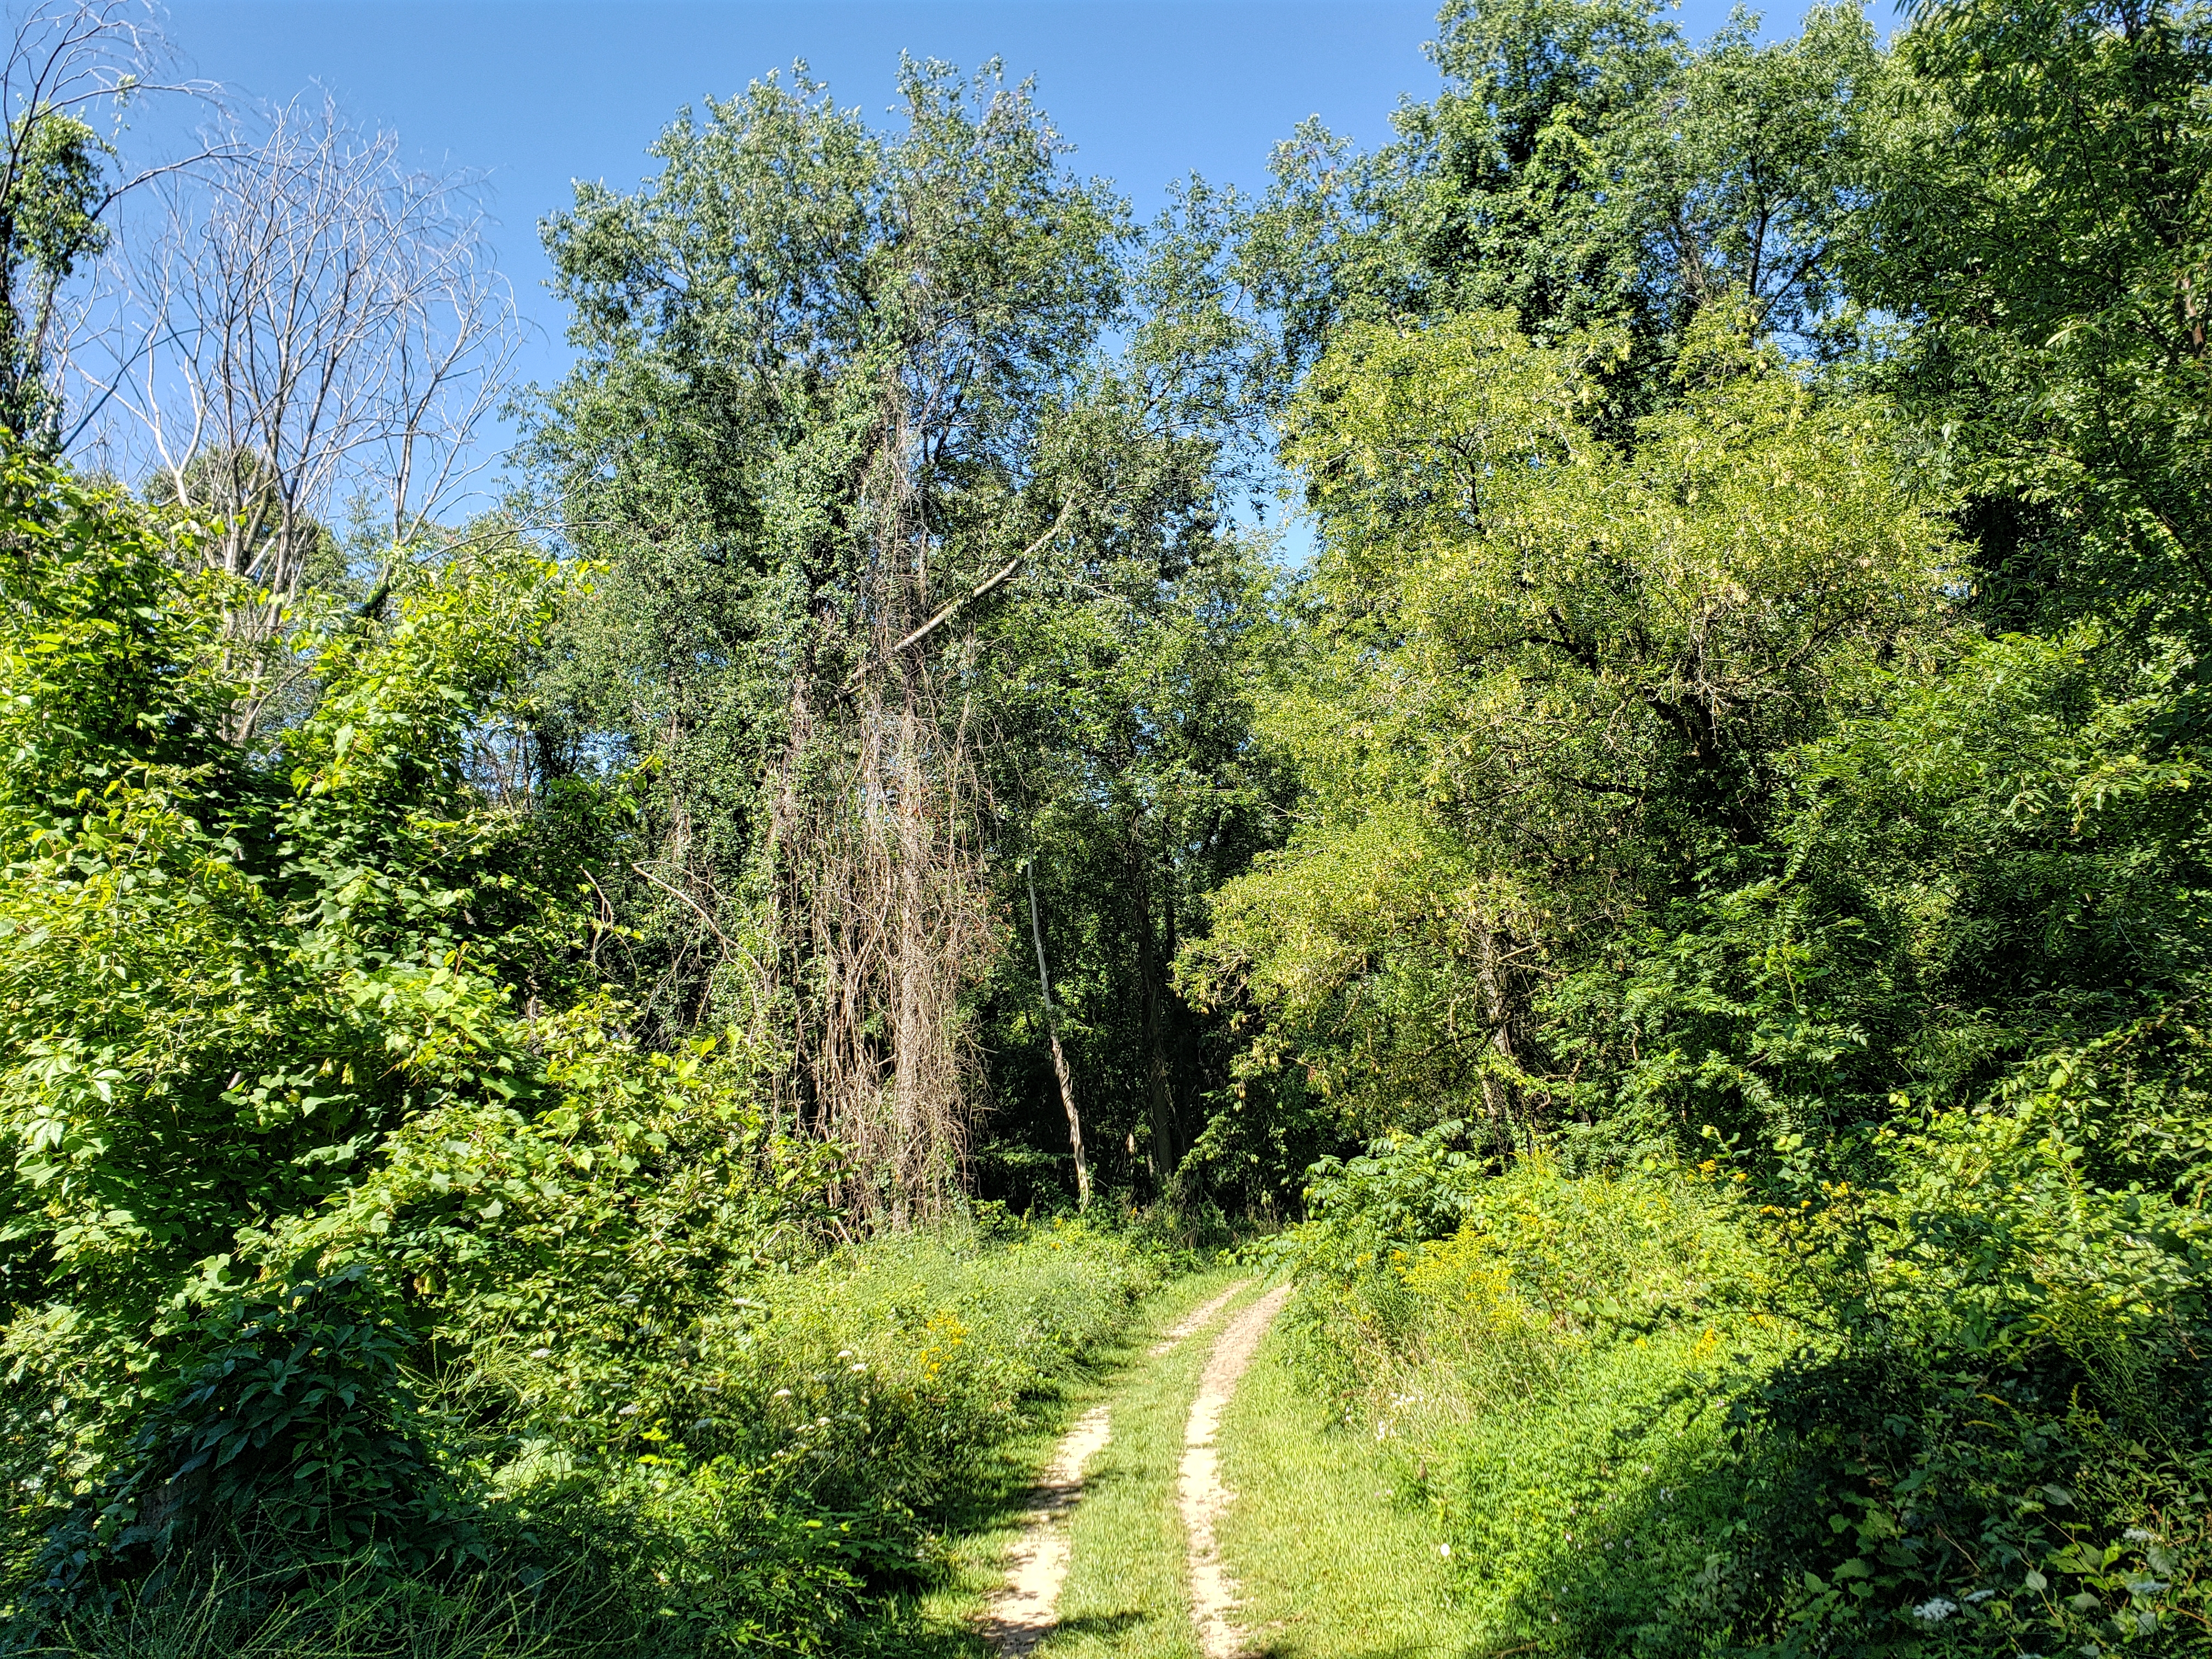 landscape along the trolley trail. the hiking trail is surrounded by trees.